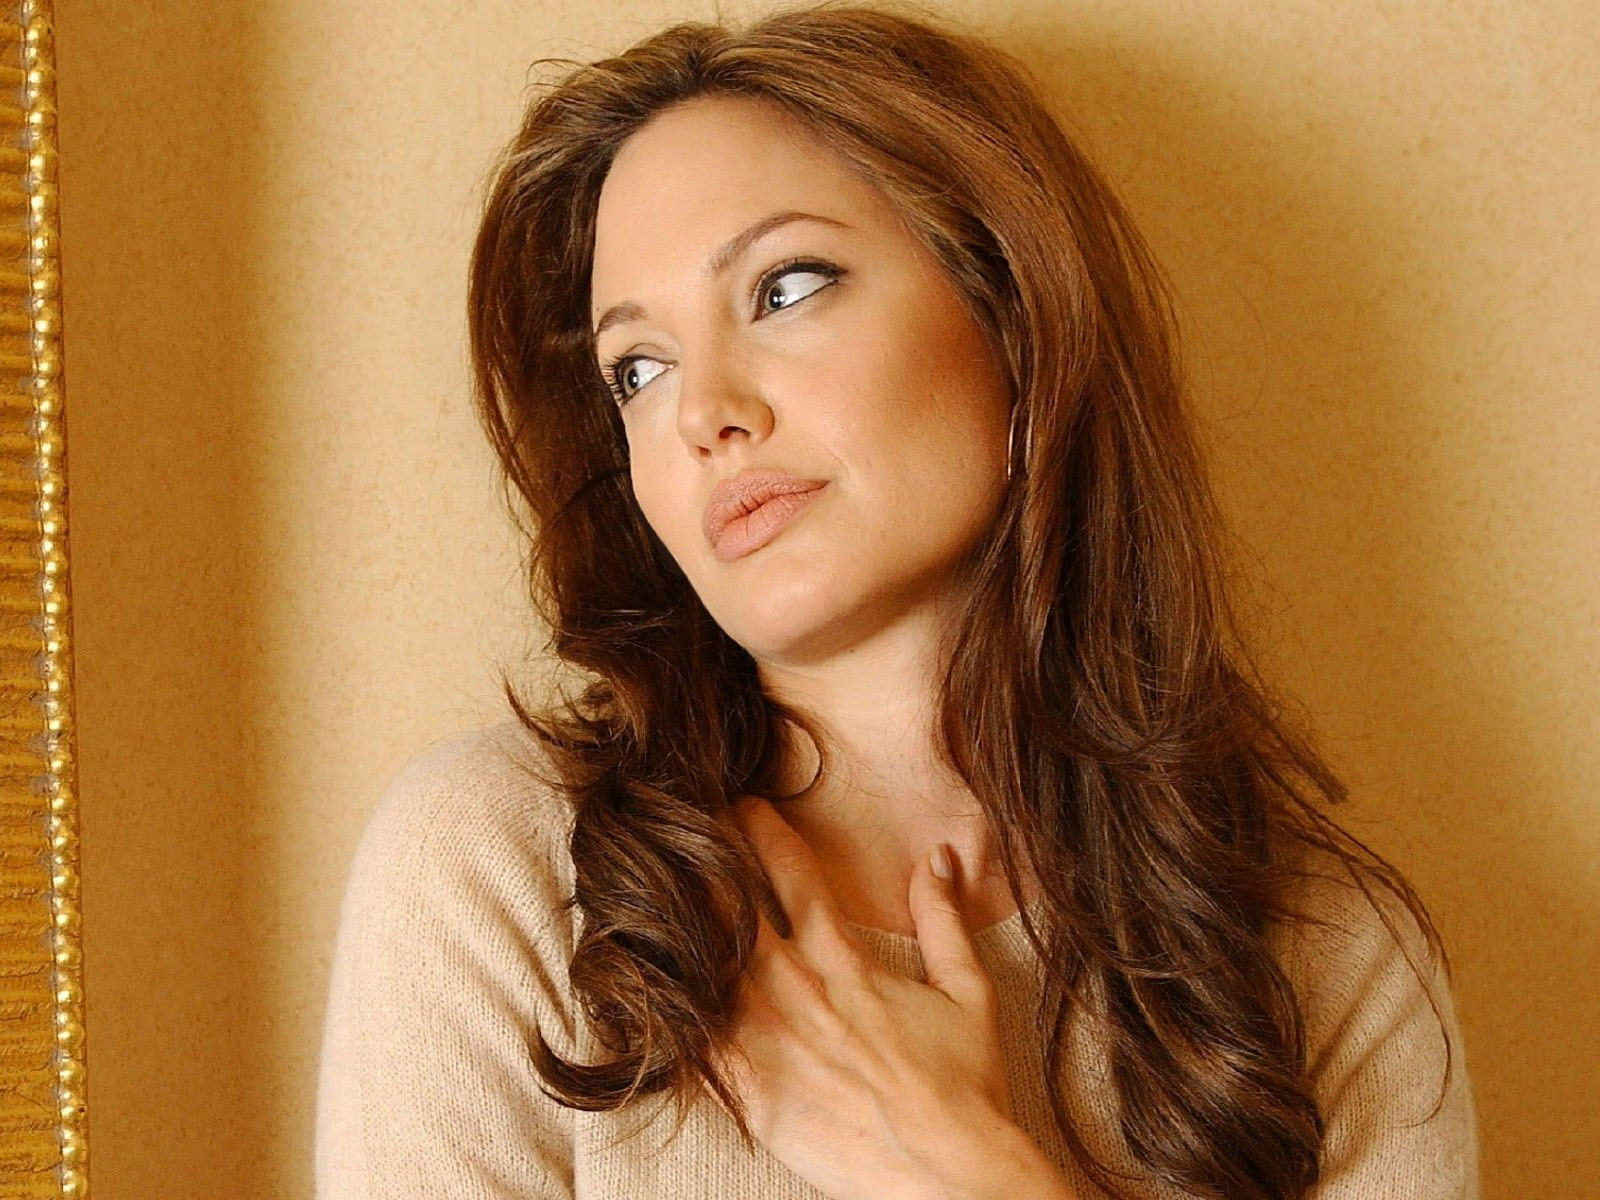 Angelina Angelina Jolie Wallpaper 32062297 Fanpop